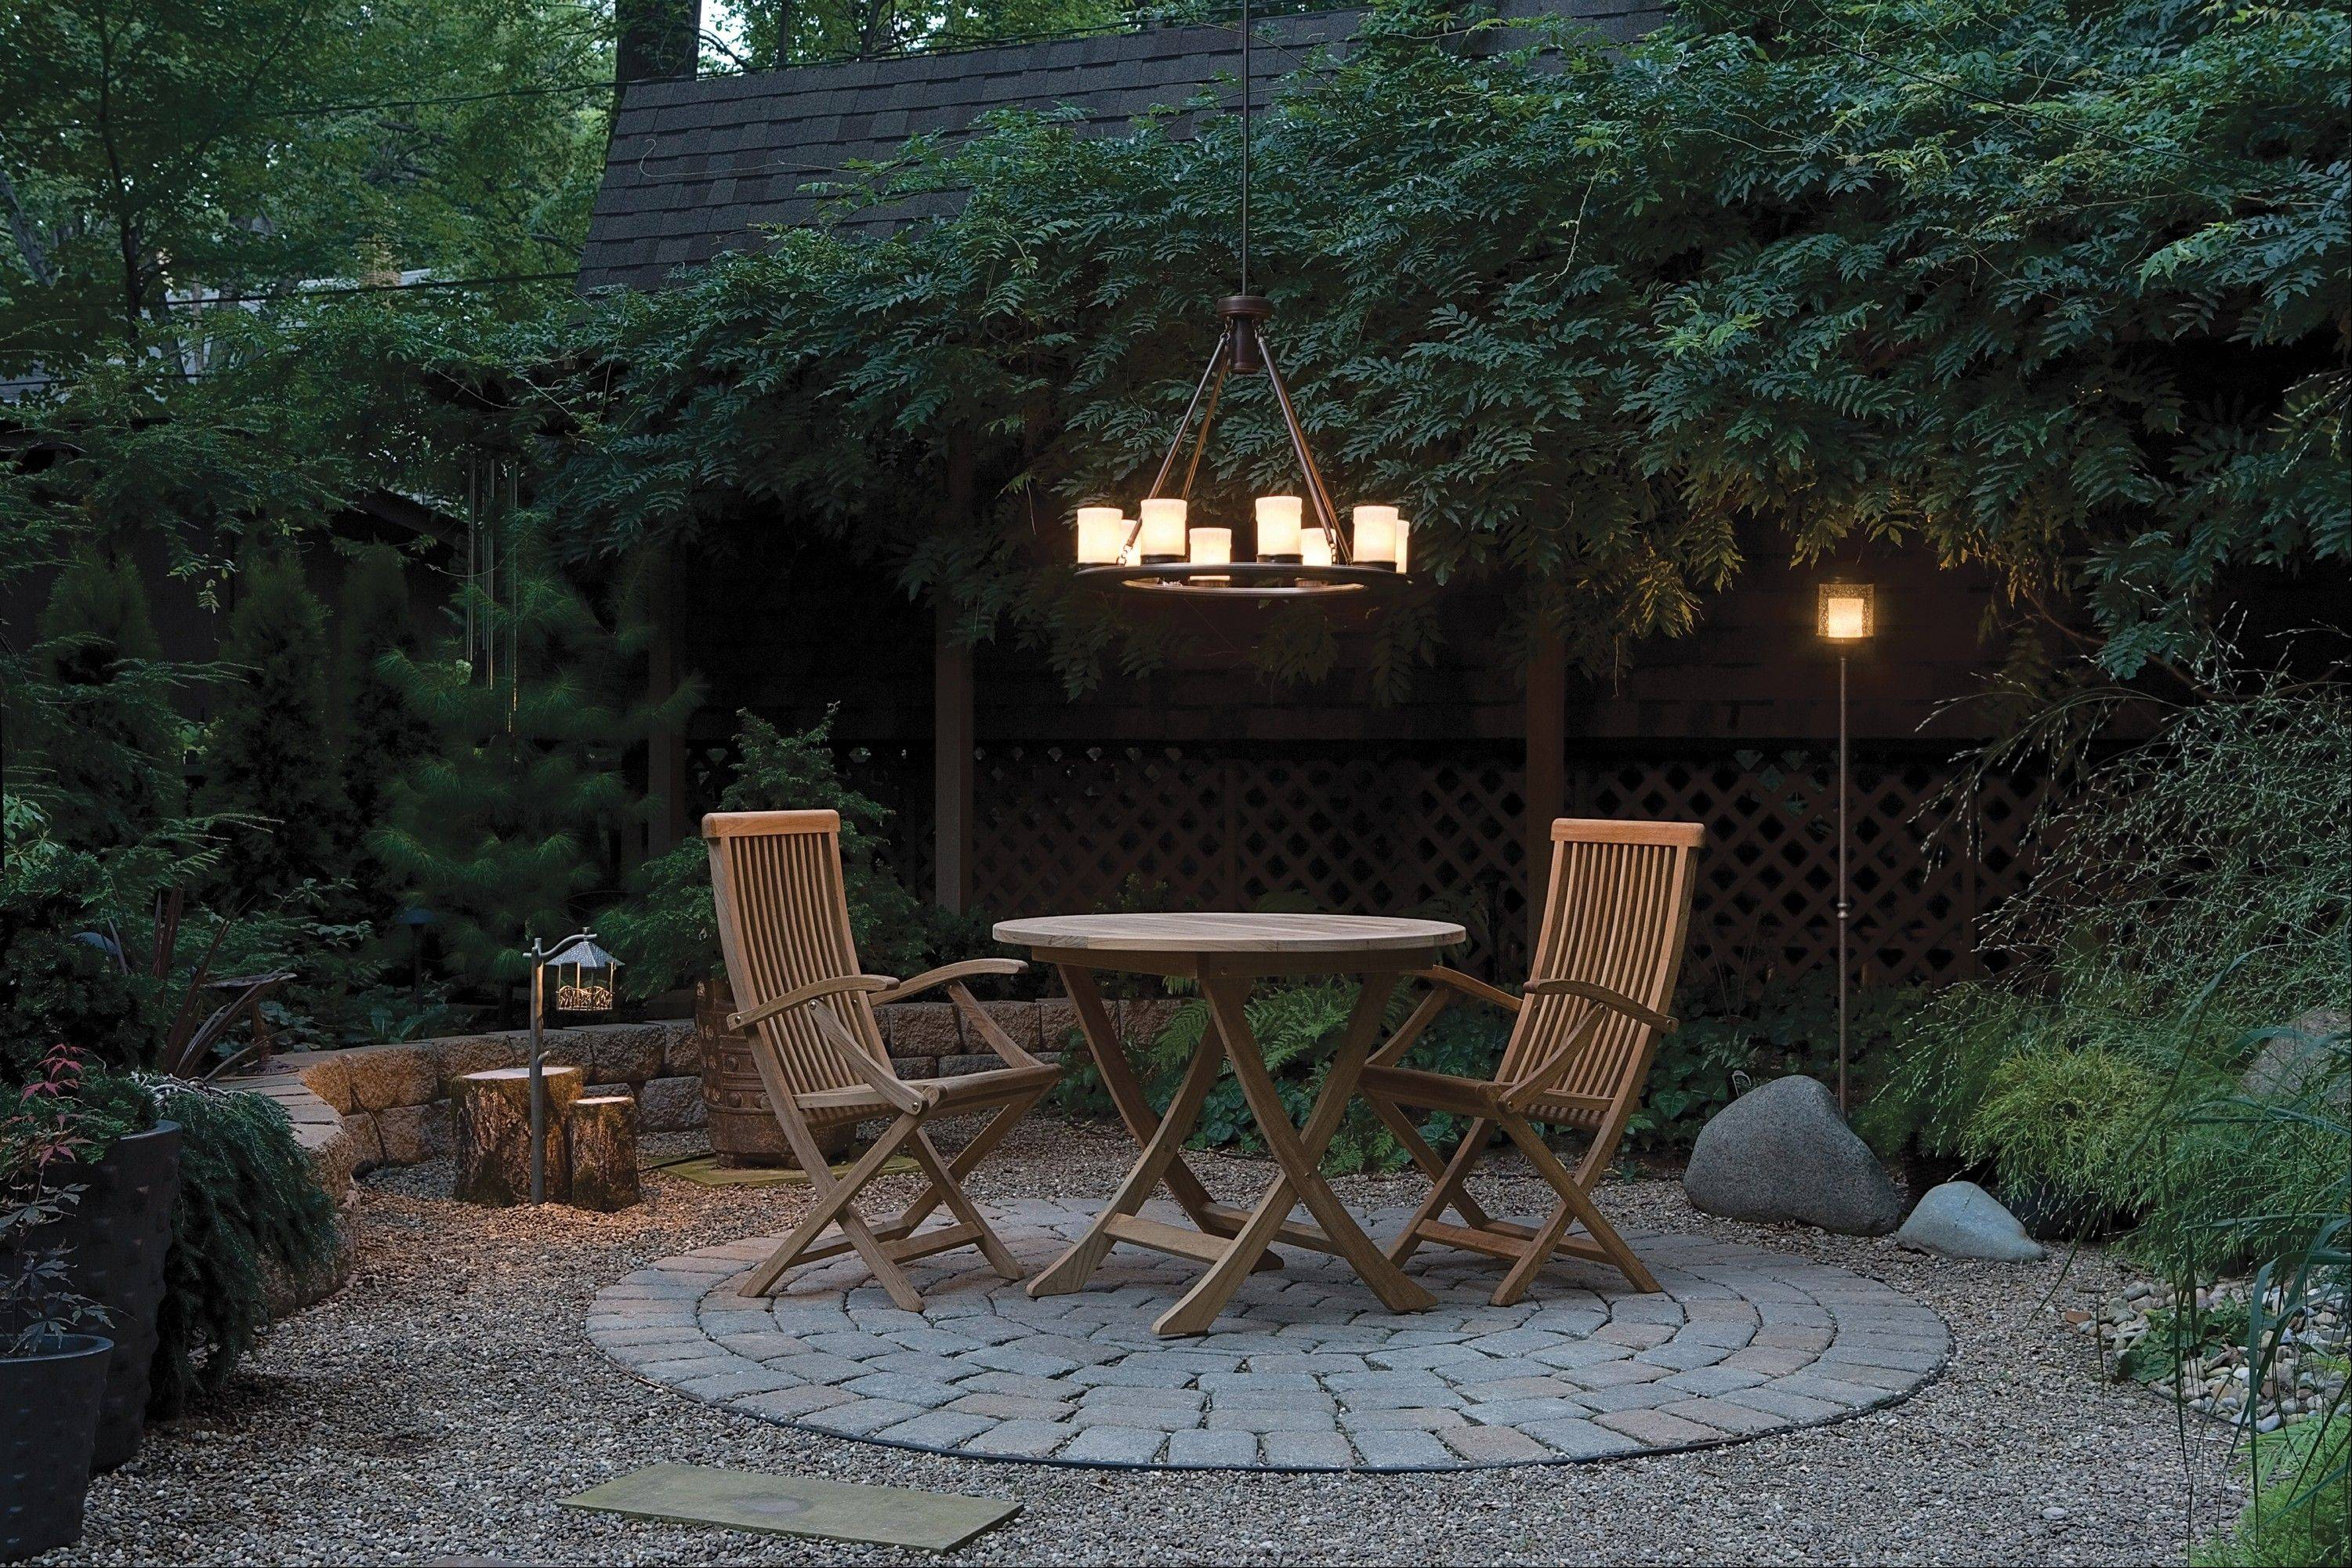 Chandeliers for outdoor dining can be hung from gazebos, pergolas and overhangs.